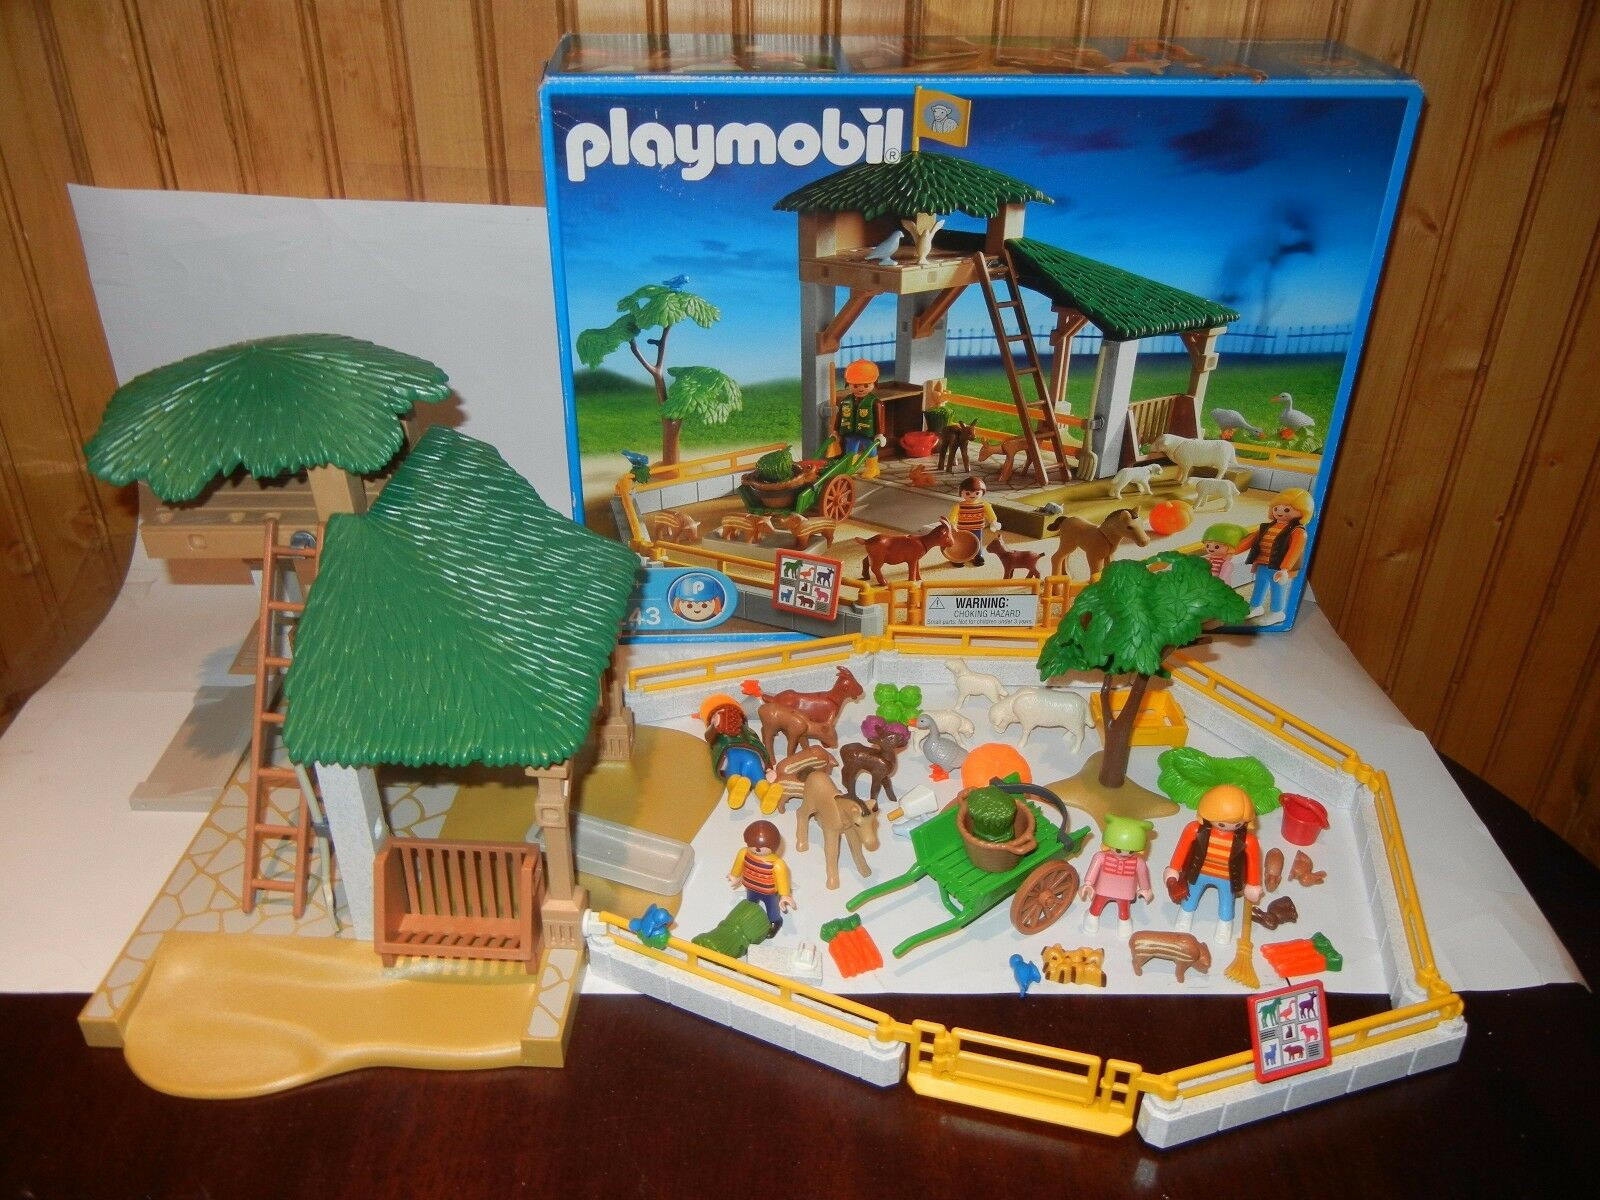 marchi di moda PLAYMOBIL 3243 SMtutti ANIMAL ANIMAL ANIMAL PETTING ZOO FARM EXCELLENT MISSING 3 PIECES  vendite calde